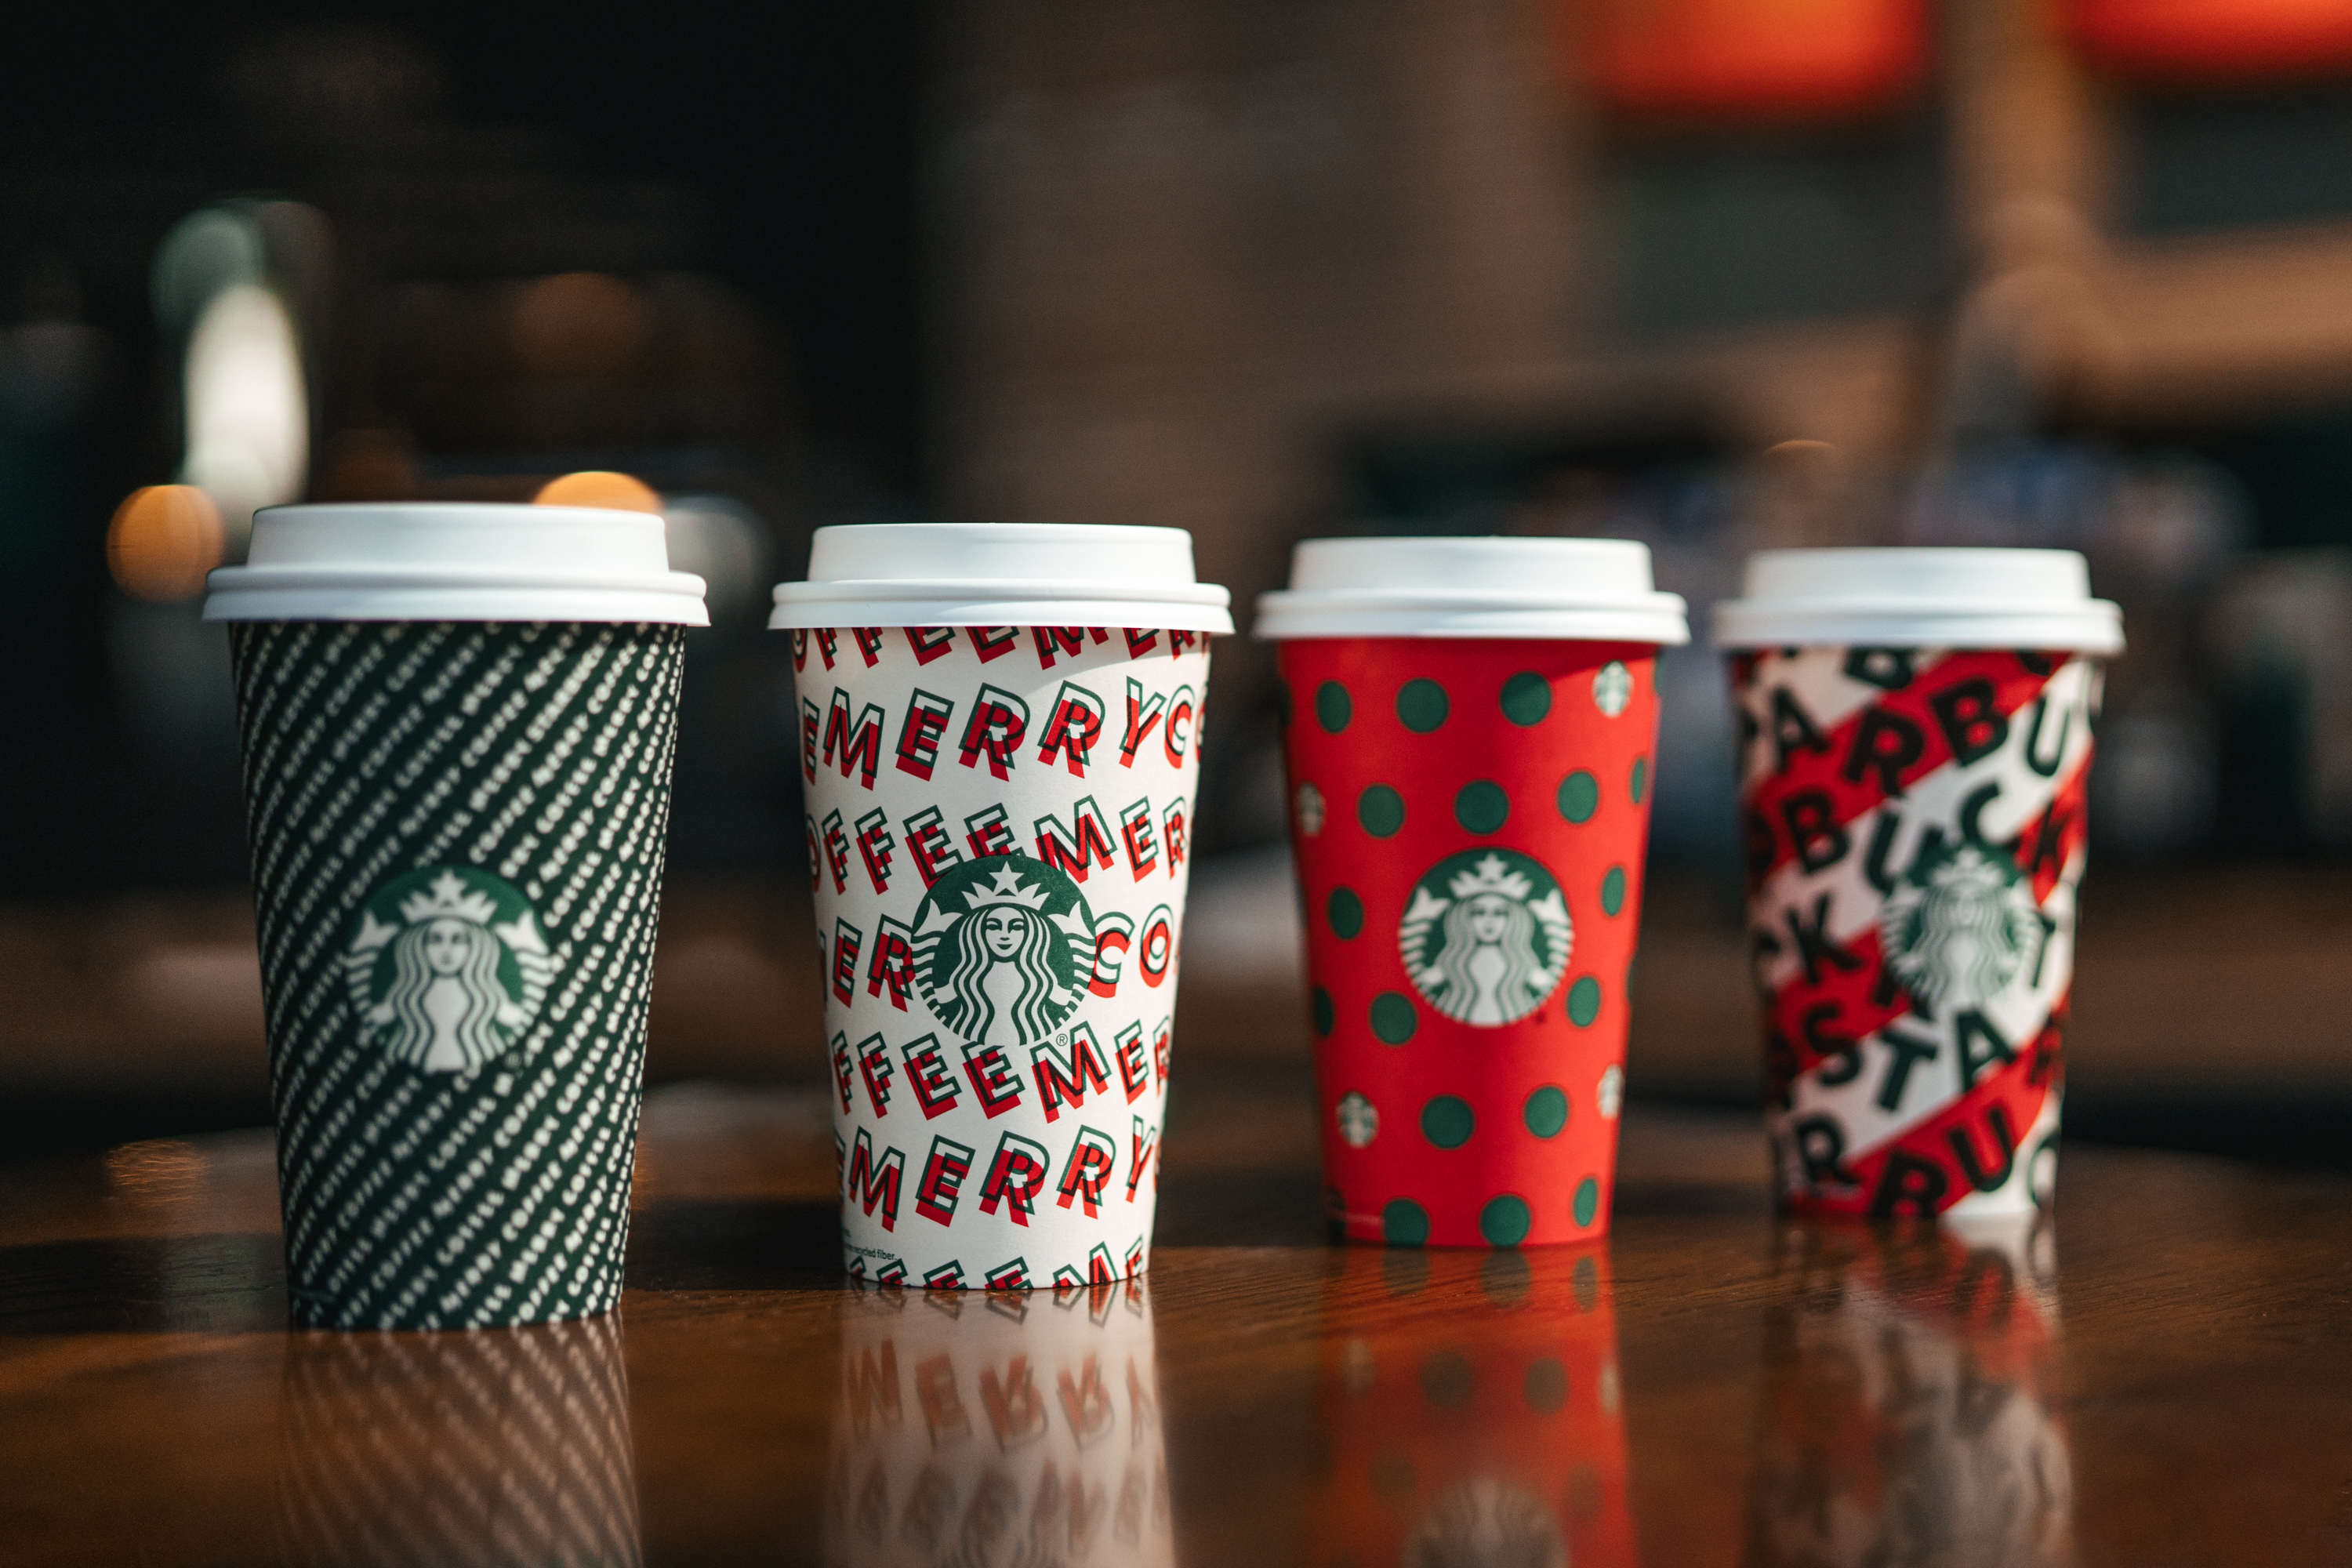 Starbucks Hours Christmas Eve 2020 Is Starbucks open on Christmas Day 2019? Store hours for Dec. 25